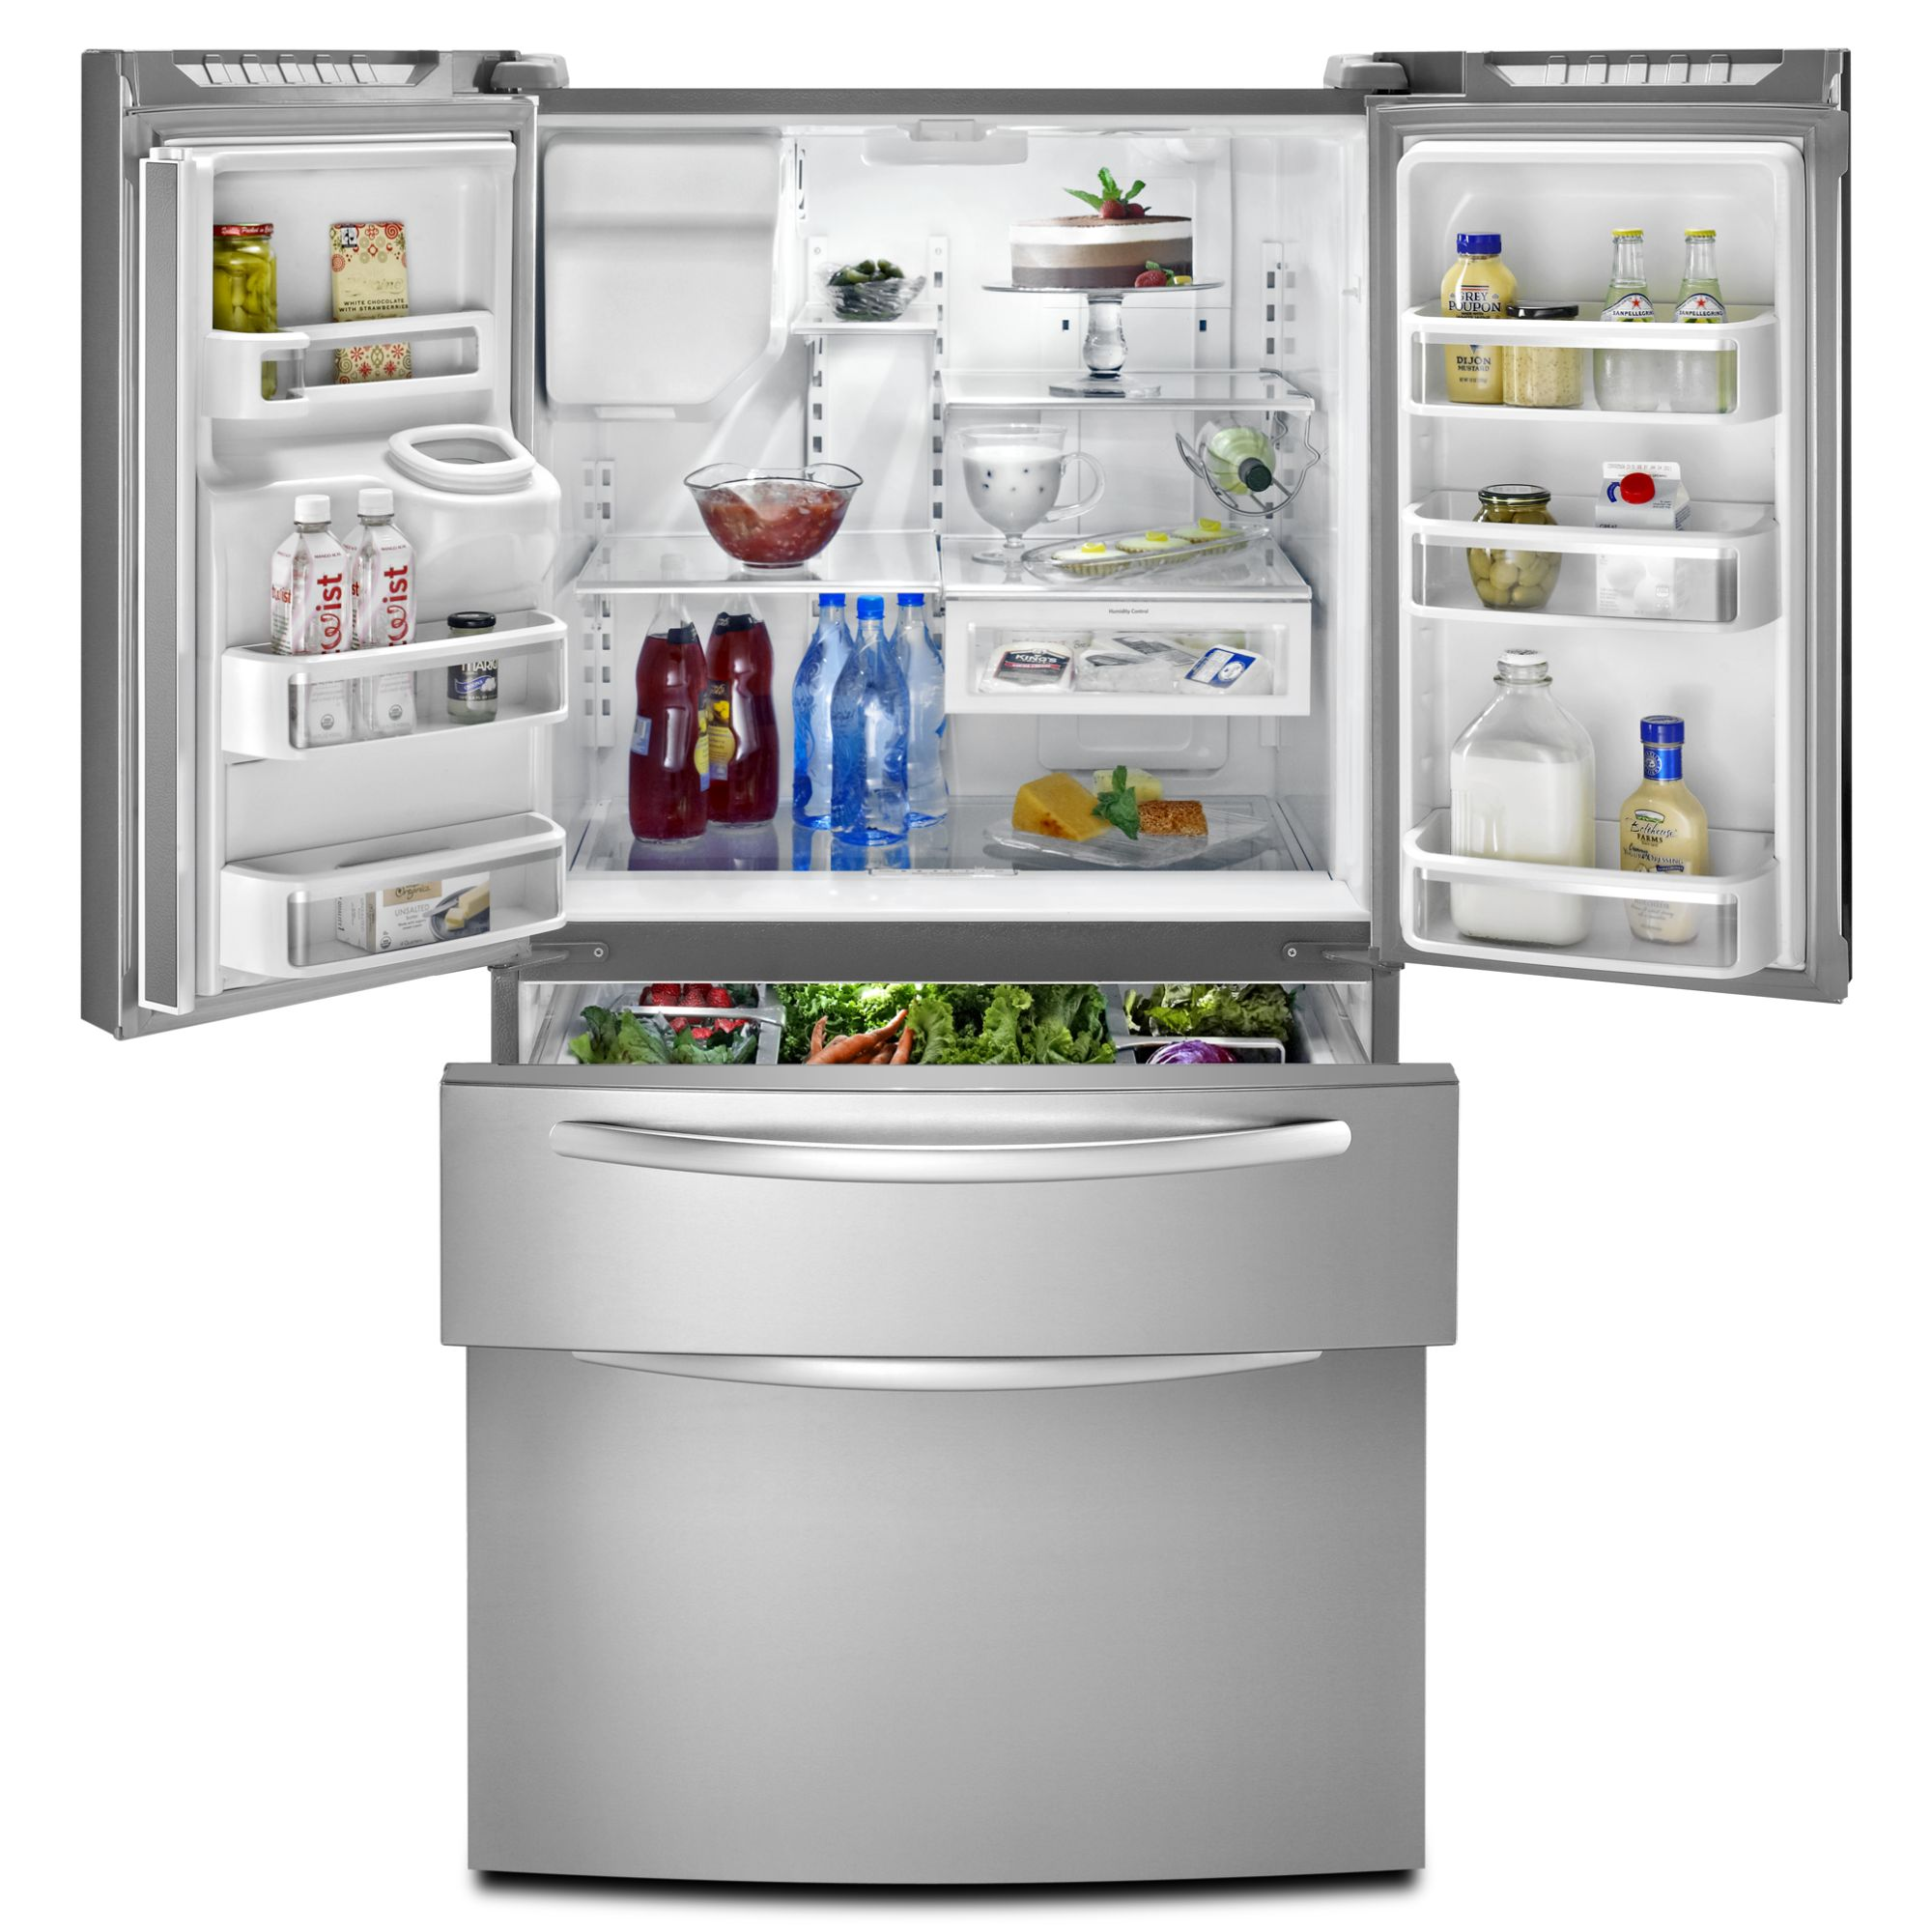 KitchenAid 25.0 cu. ft. French-Door Refrigerator w/ FreshVue™ Drawer - Stainless Steel